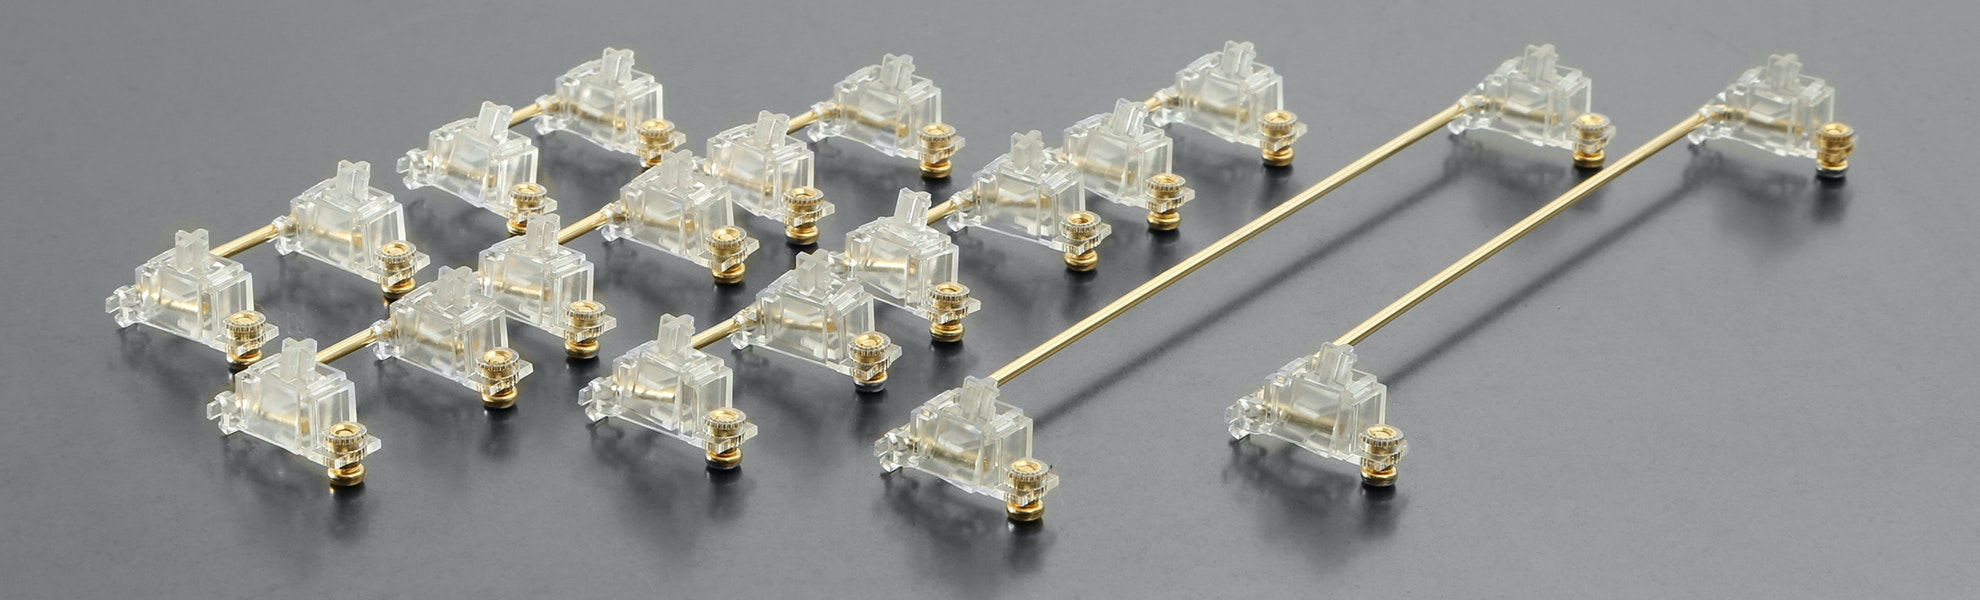 Transparent Gold-Plated PCB Screw-in Stabilizers